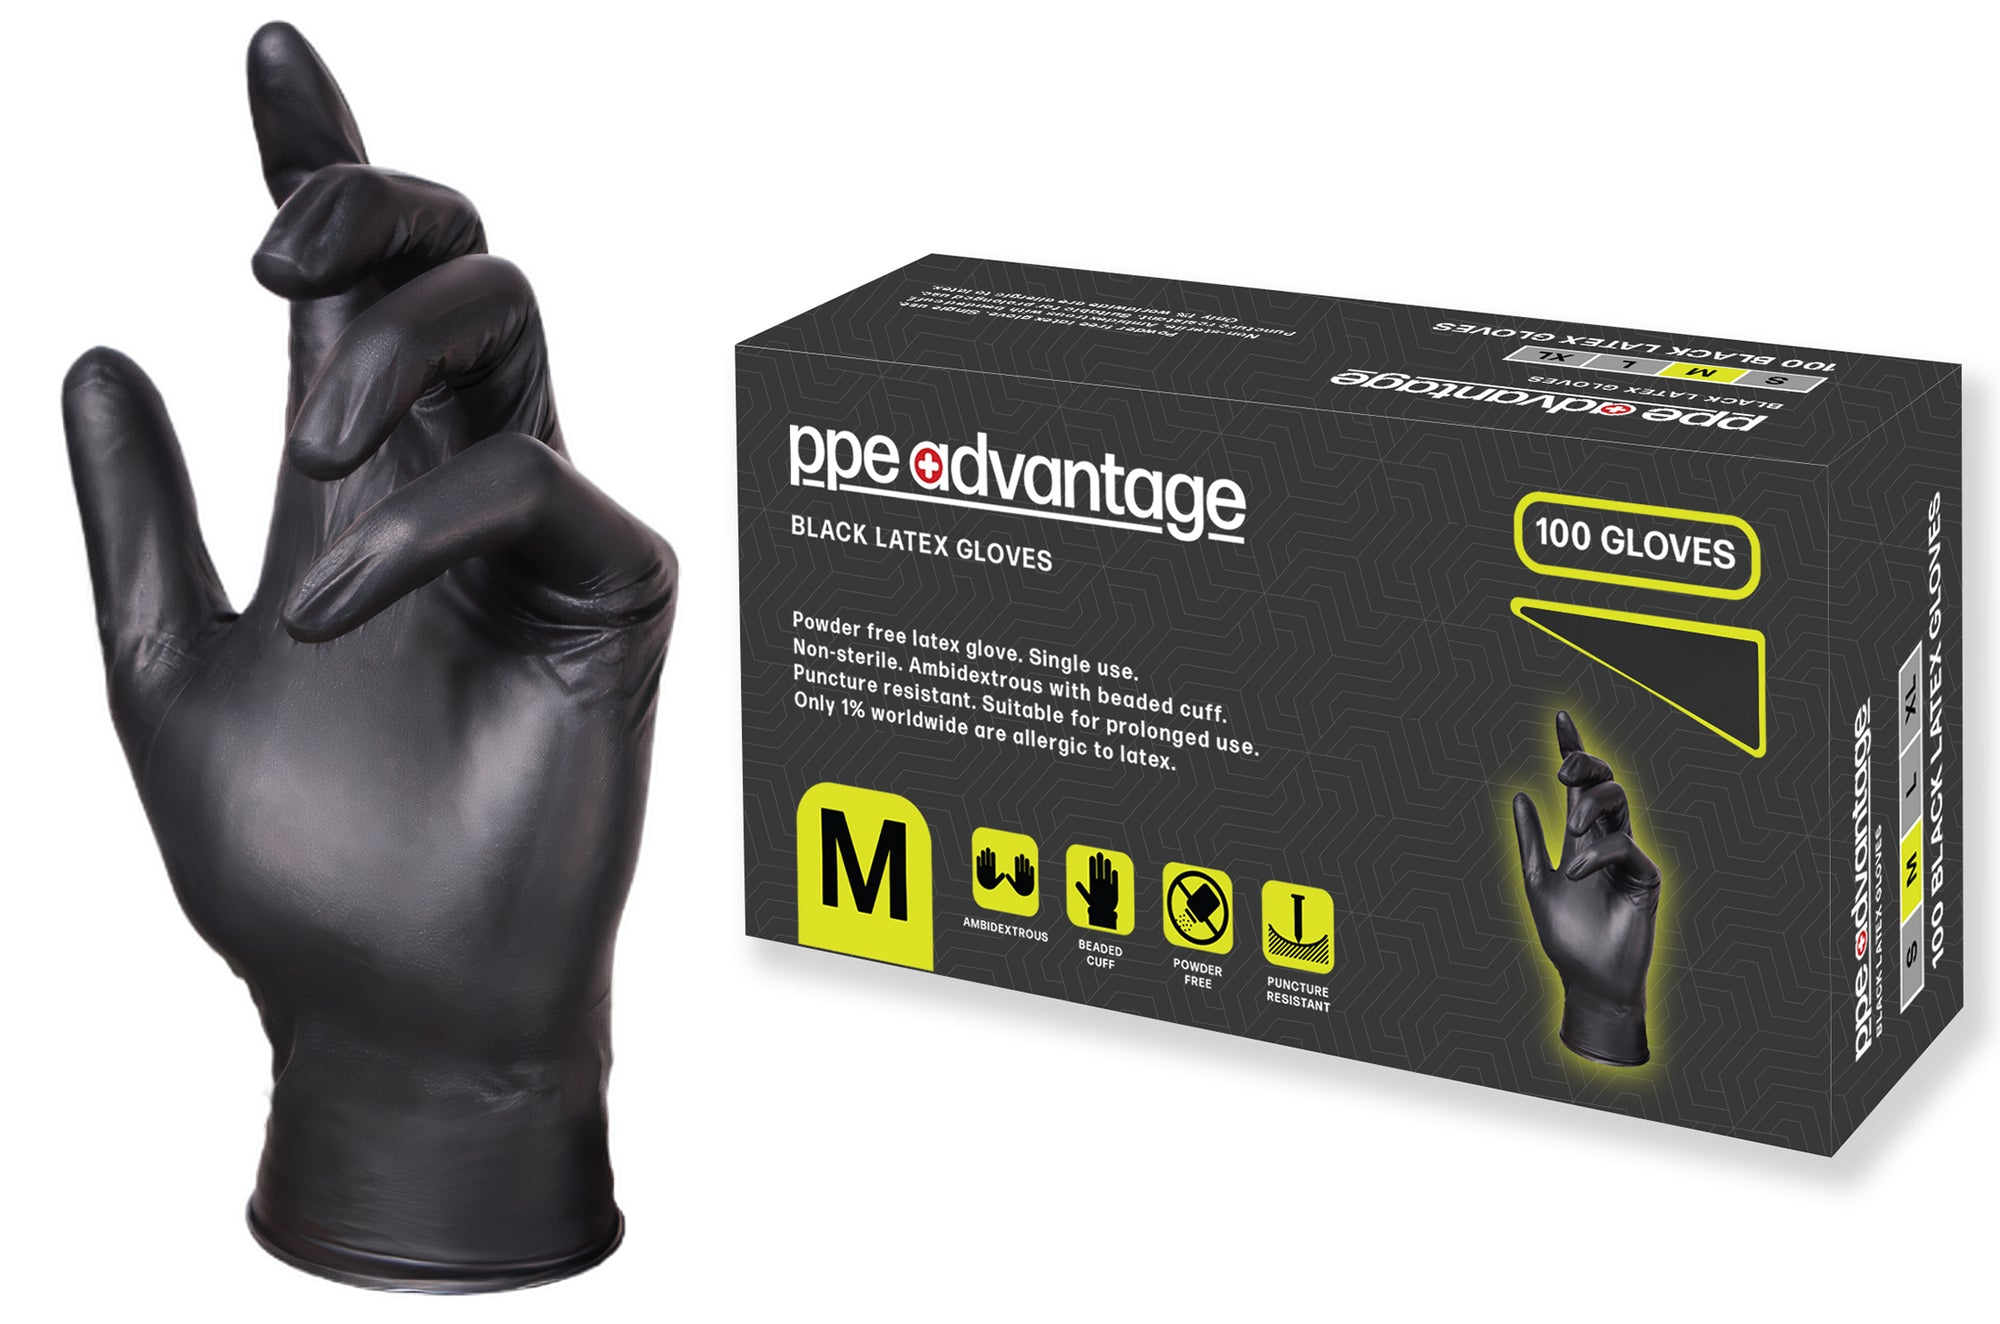 3100 PPE Advantage Black Nitrile Gloves - Non Medical | PPE Advantate powered by dS Product Hunters